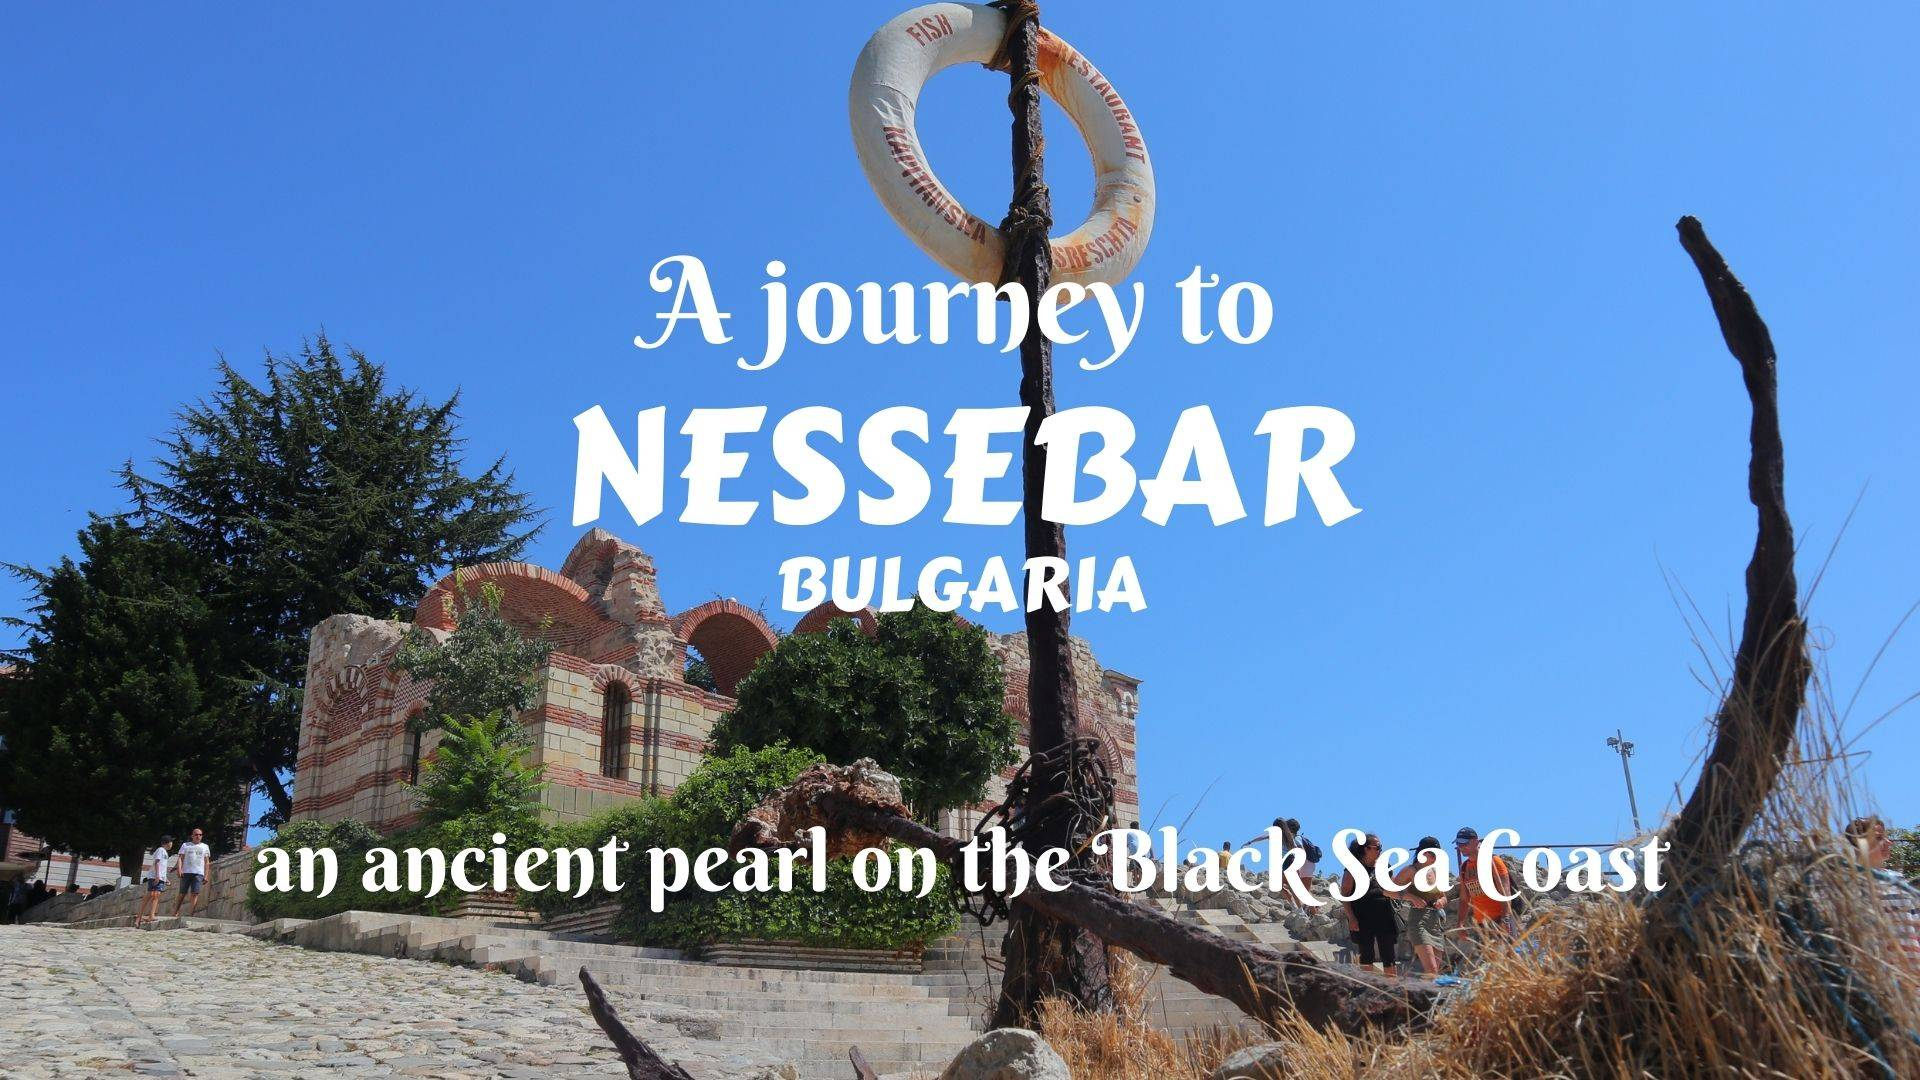 A journey to Nessebar, Bulgaria- an ancient pearl on the Black Sea Coast